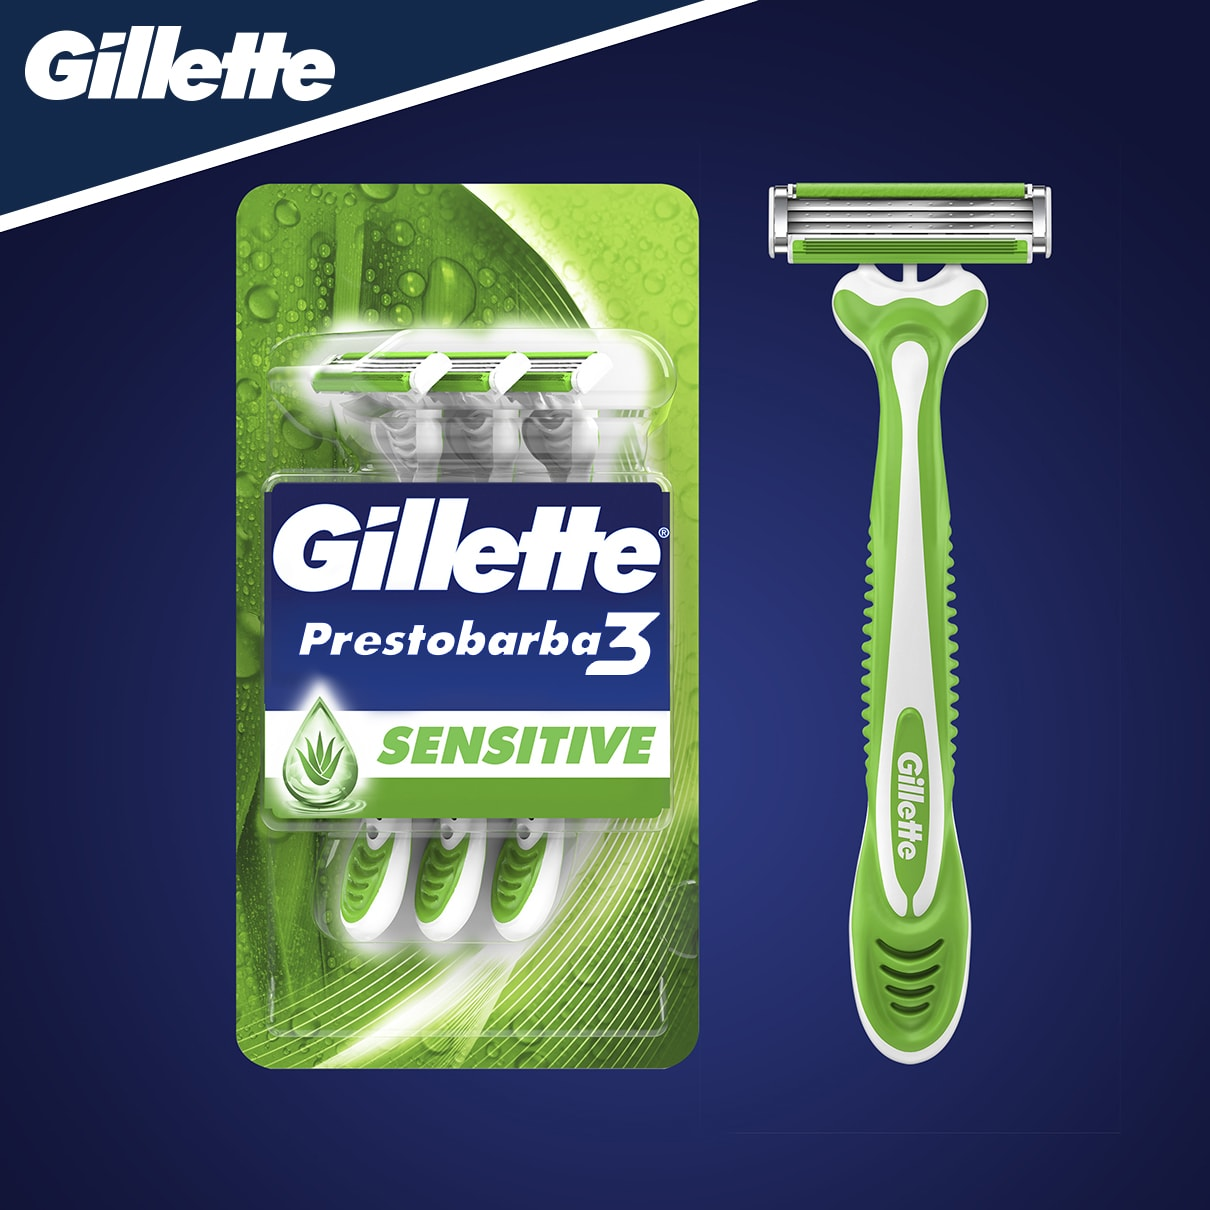 Gillette Prestobarba3 Sensitive